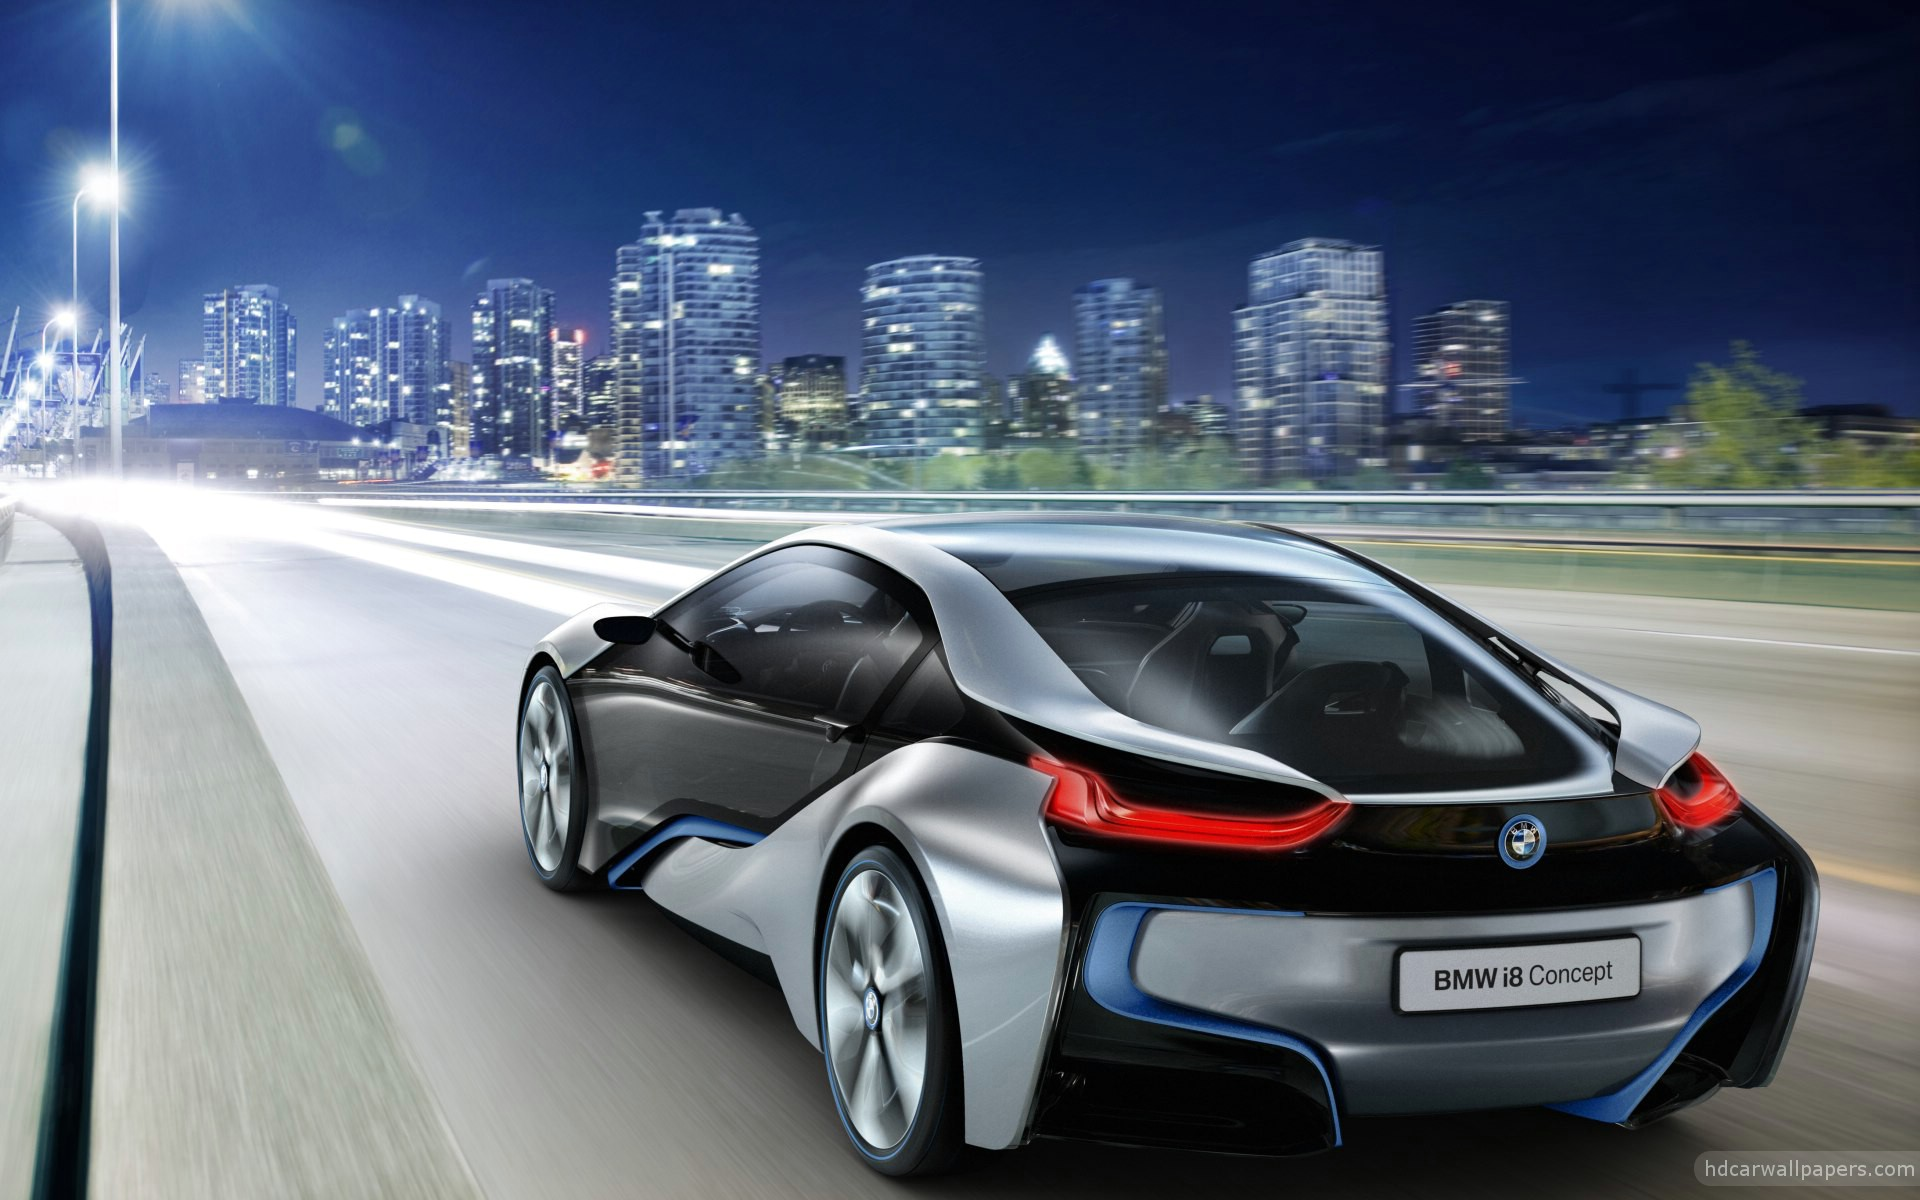 Bmw Cars Photos Free Download: 2012 BMW I8 Concept 4 Wallpaper